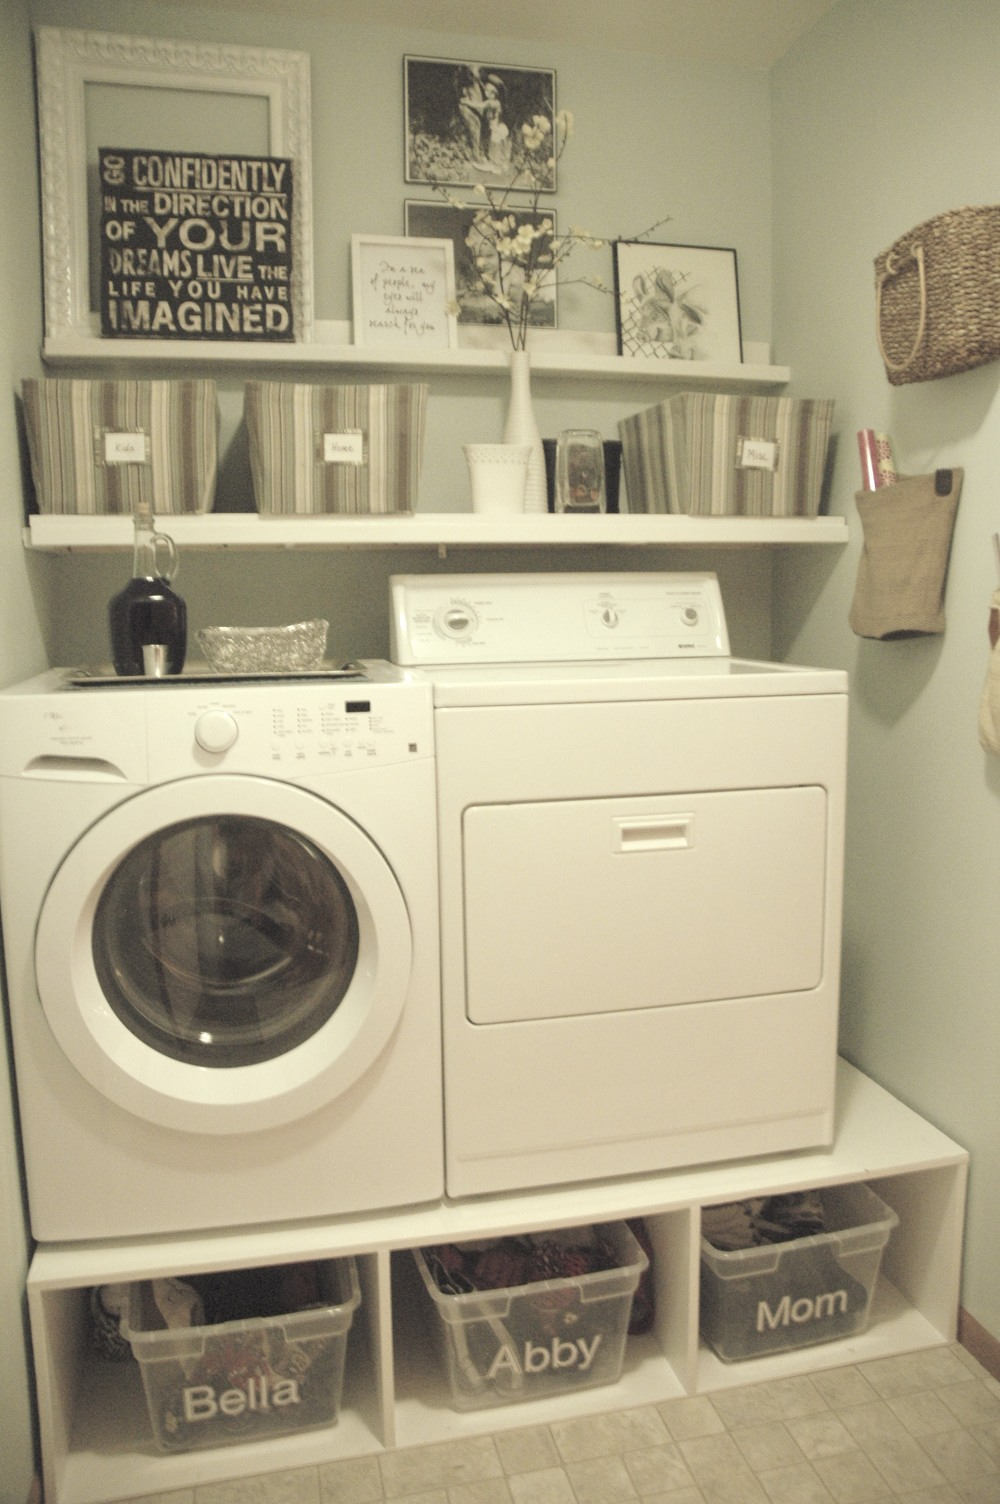 How to Organize a Small Laundry Room - Page 4 of 13 ... on Laundry Room Organization Ideas  id=75657